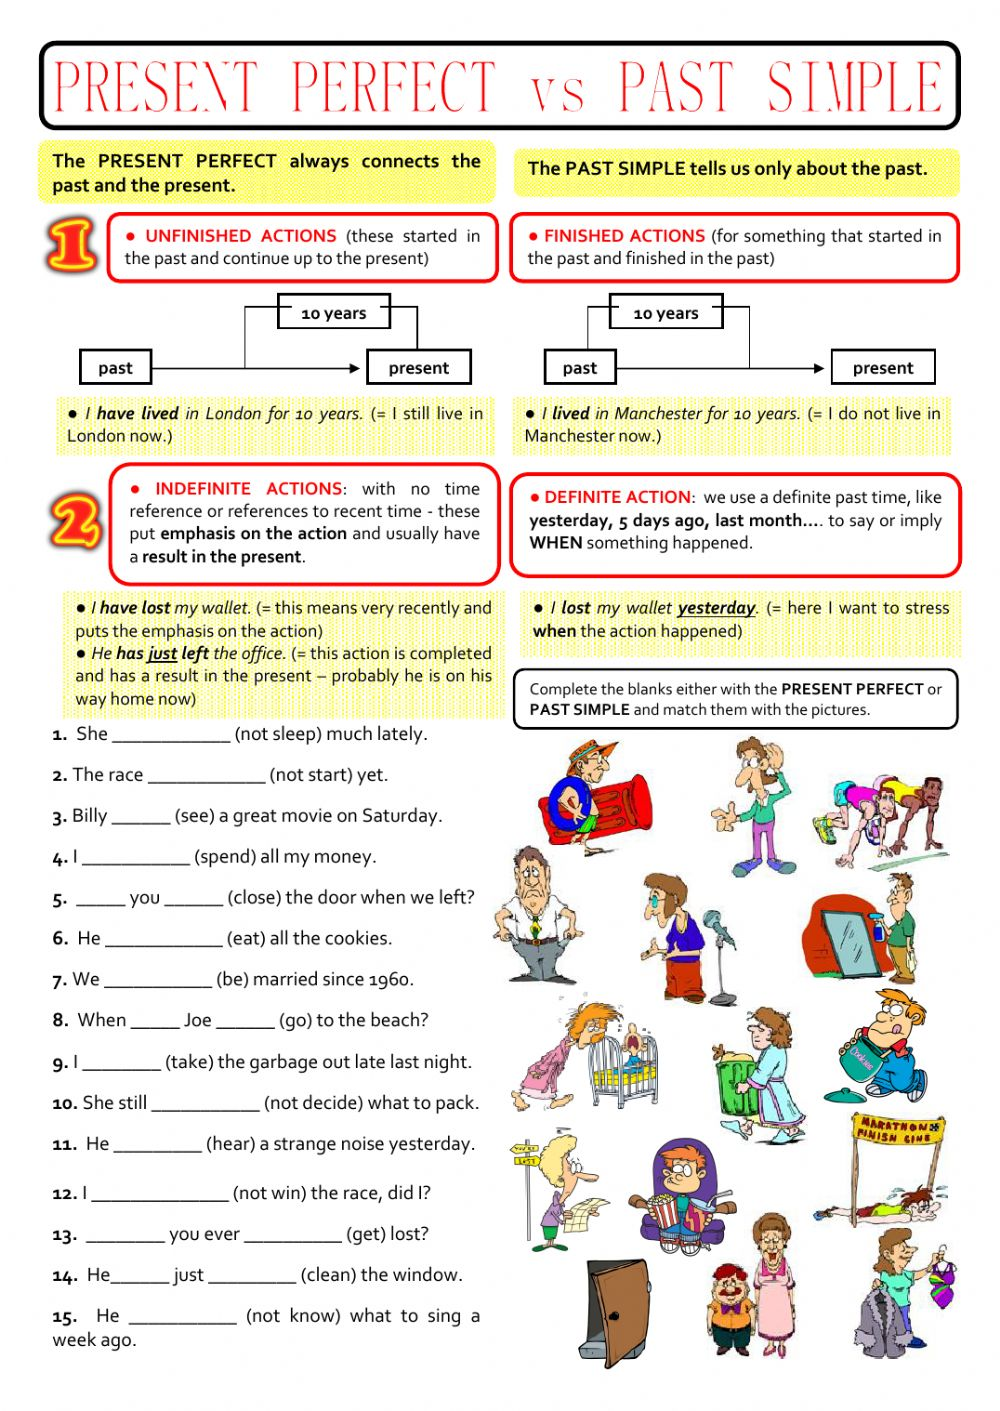 past simple Interactive worksheets – Esl Past Tense Worksheets